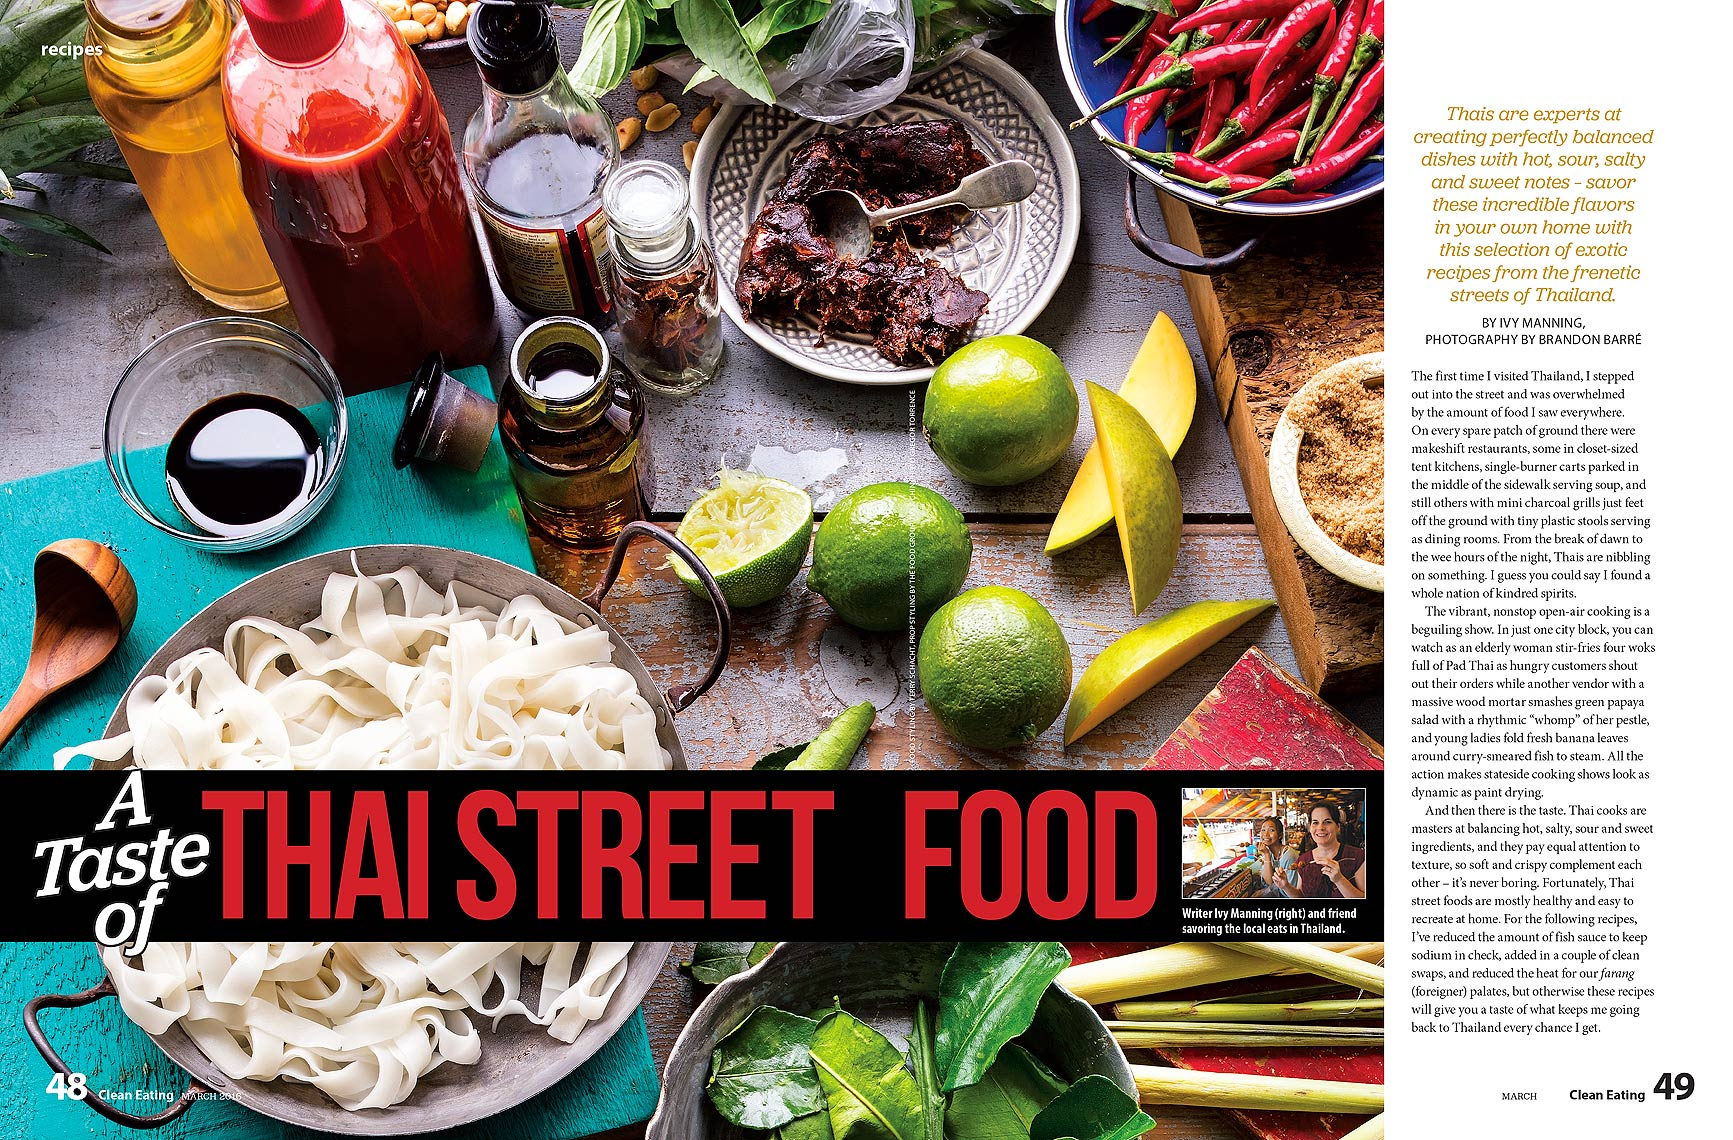 Clean_Eating_Magazine_Thai_Street_Food